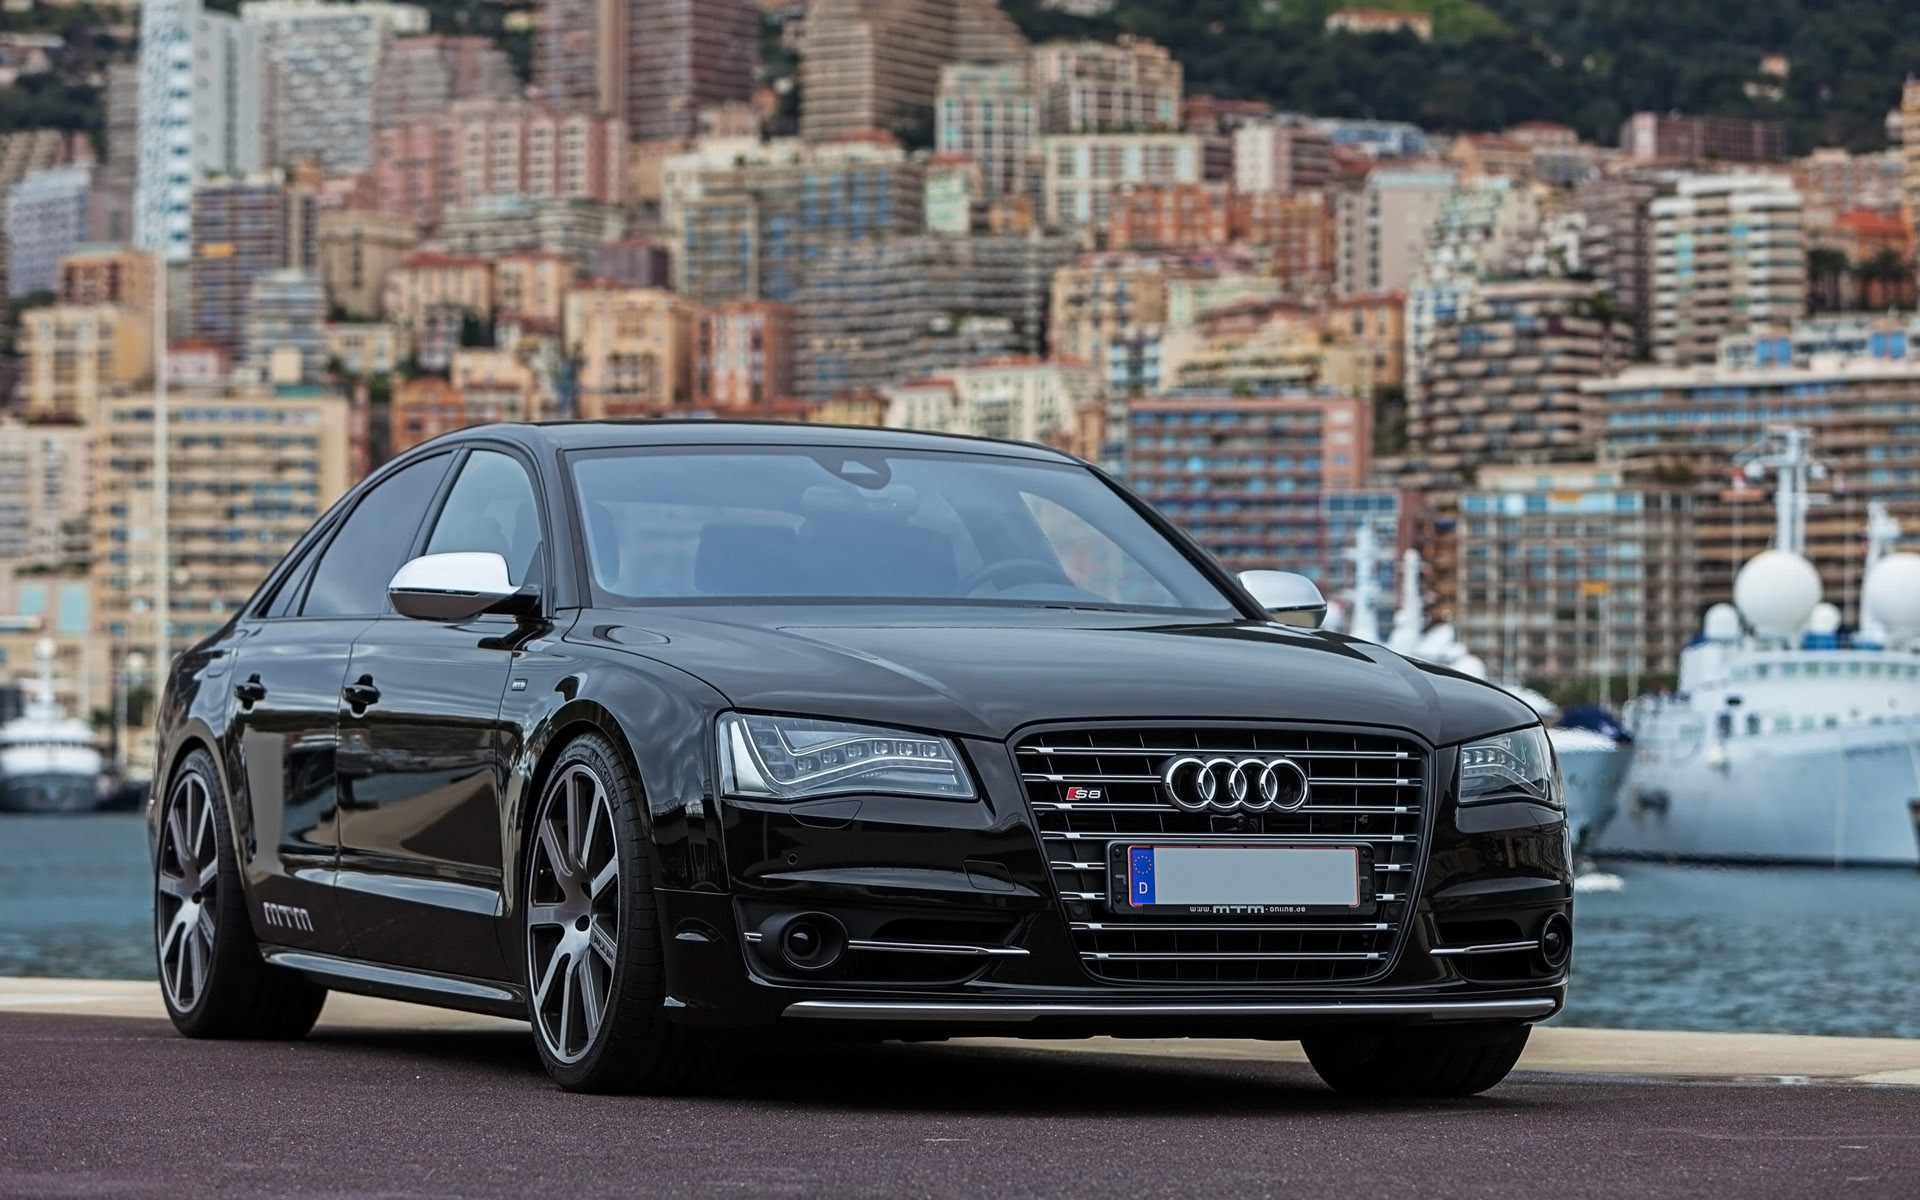 Audi S8 Wallpapers 46177 Kb   4USkY 1920x1200